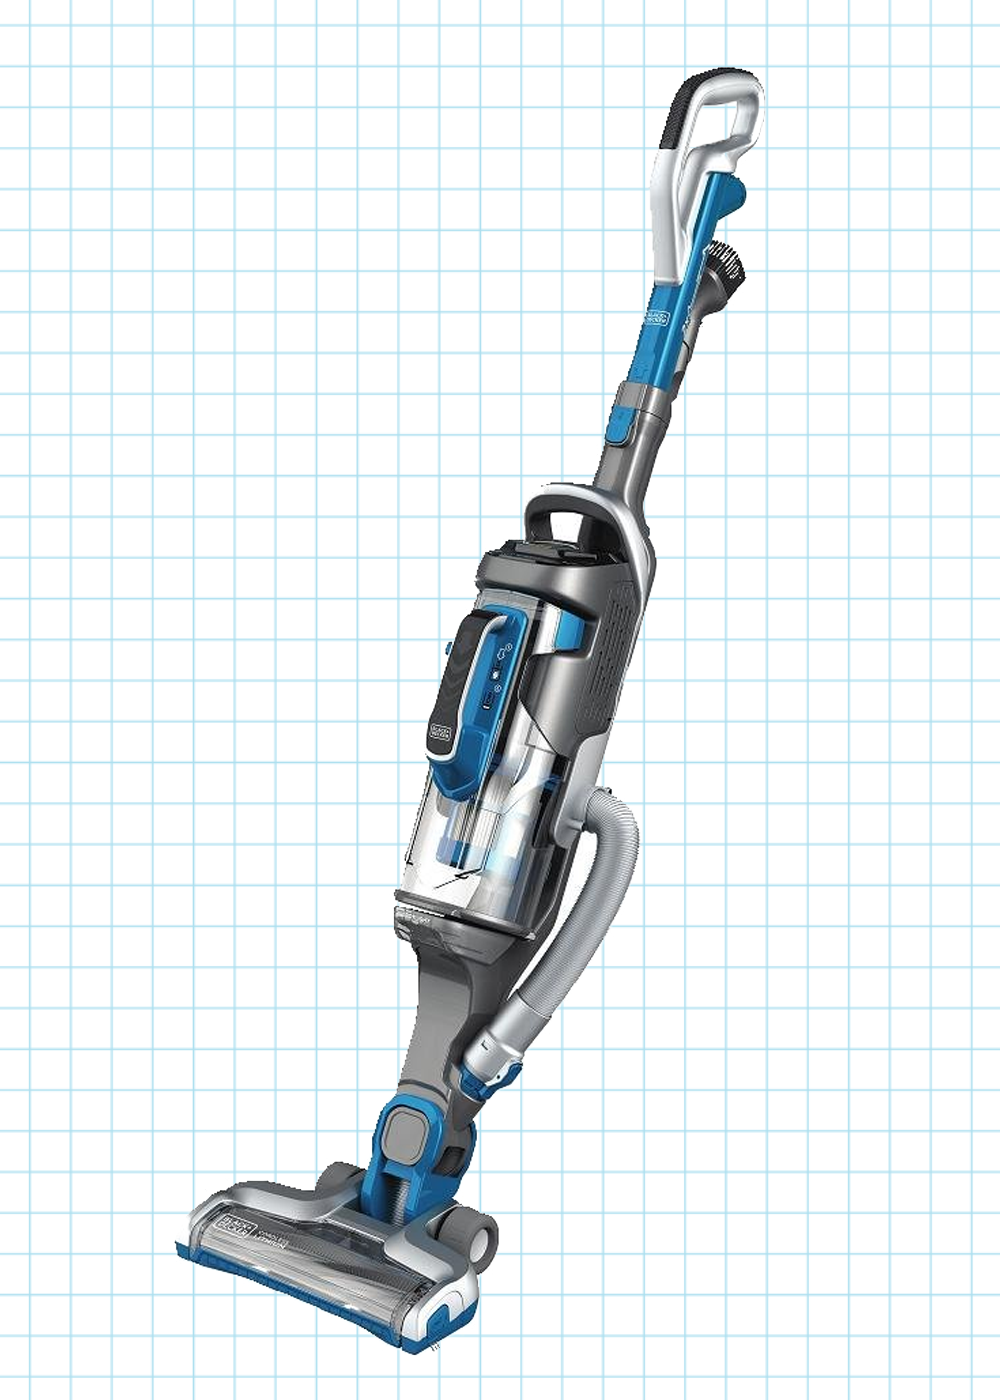 7 Best Stick Vacuums Of 2019 Top Cordless Vacuum Cleaners